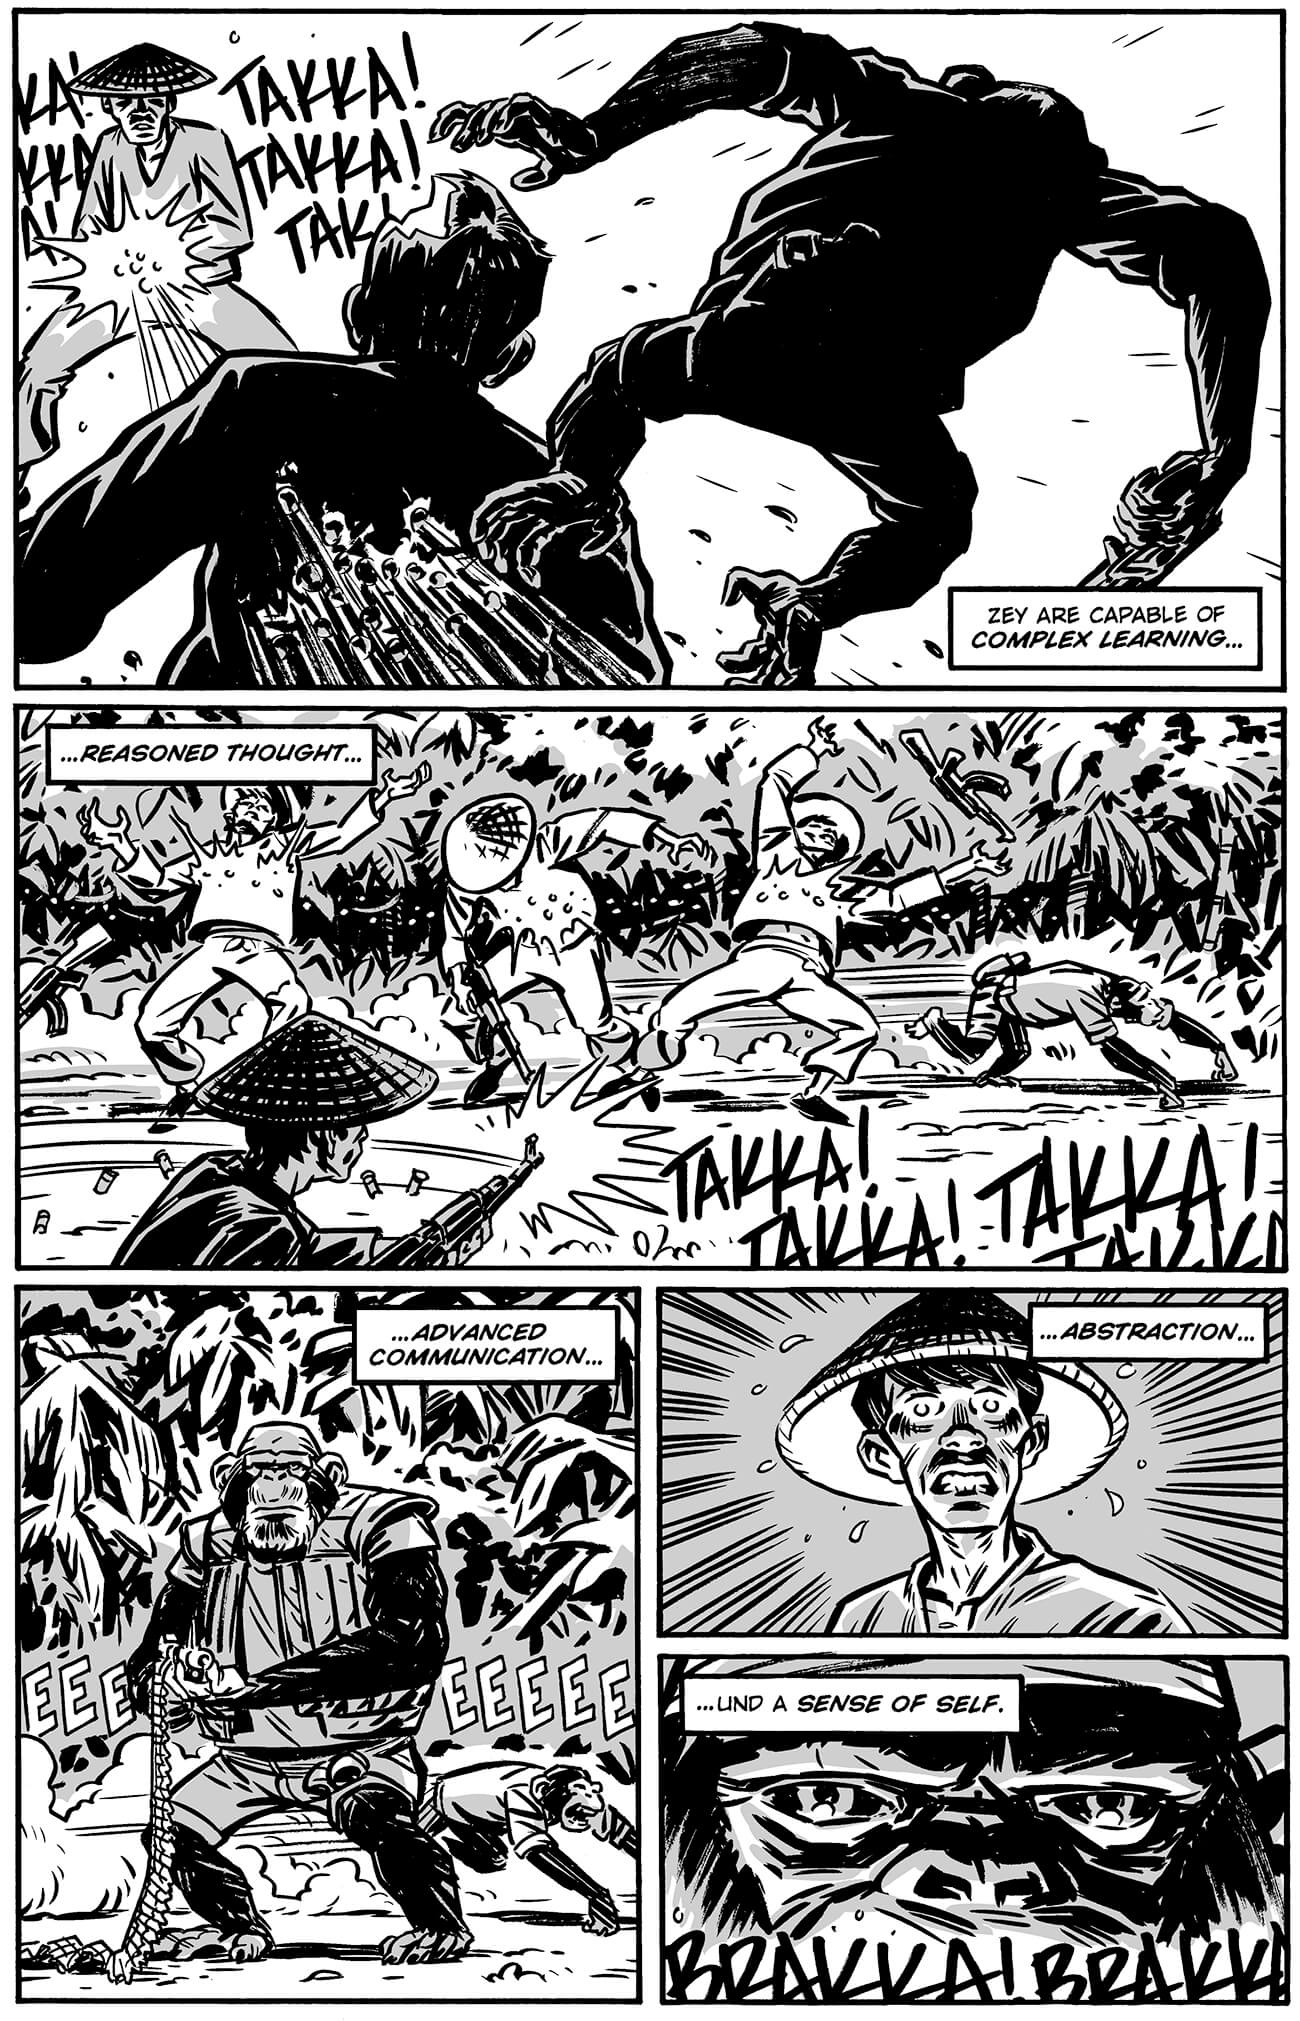 guerillas by brahm revel, page 125